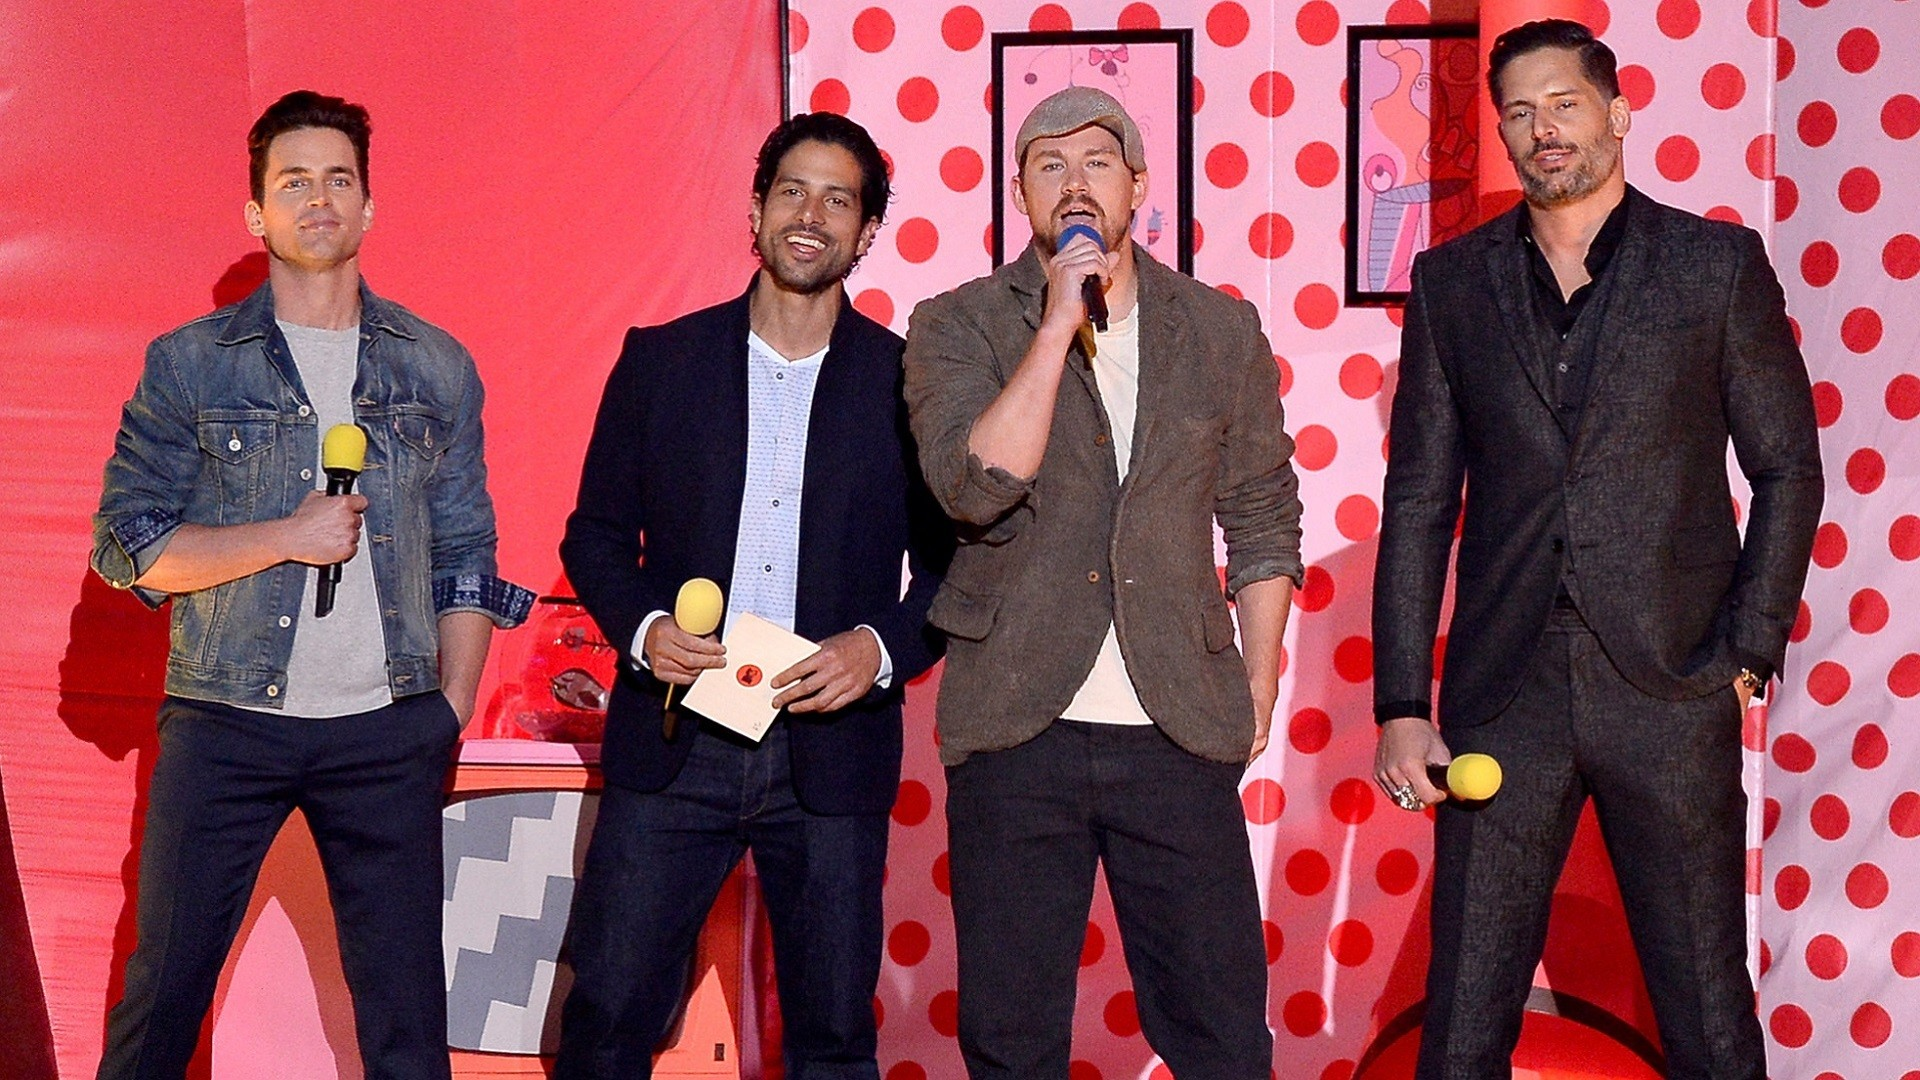 Was anyone offended by what Channing Tatum said at the MTV Movie Awards?